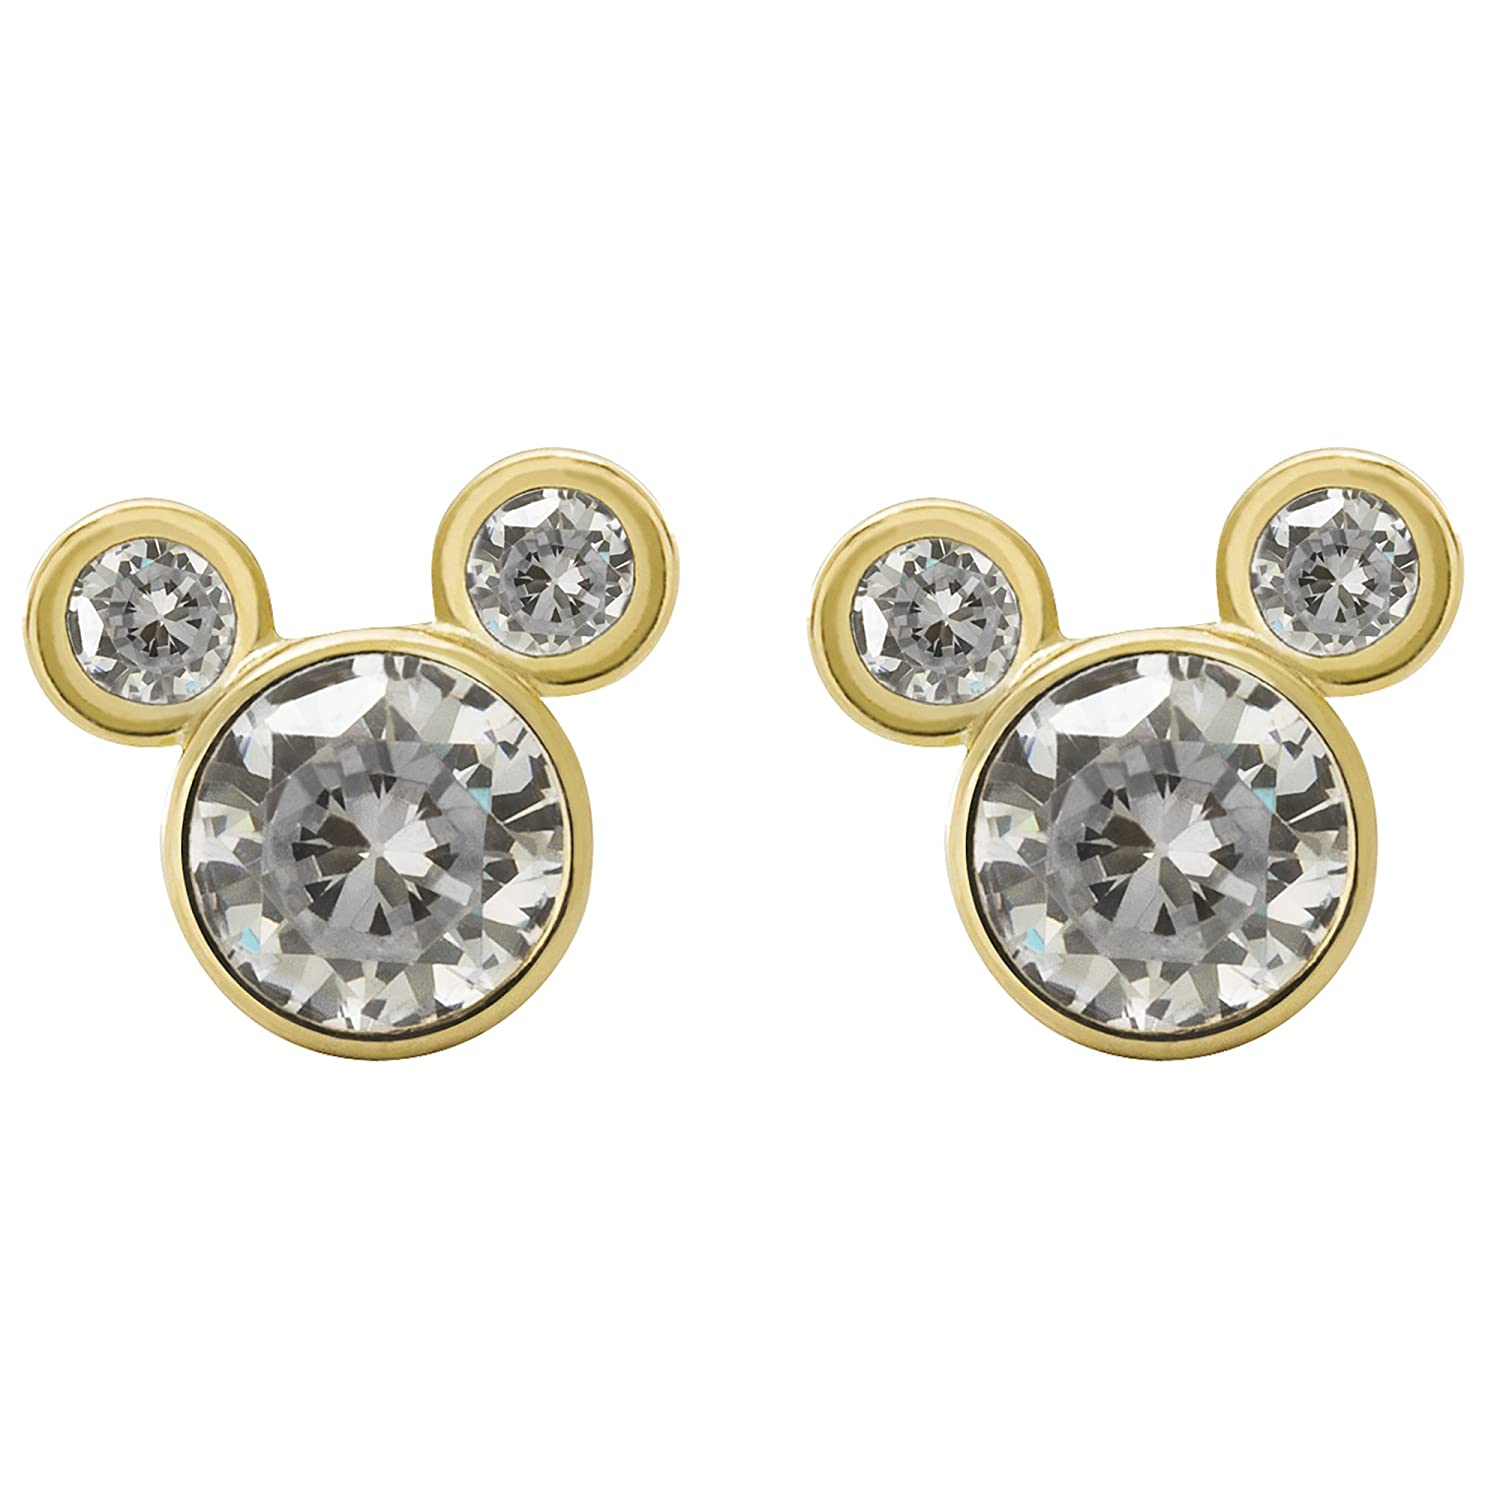 1e98009d5 Amazon.com: Disney Mickey Mouse Women Jewelry, 10k Yellow Gold Cubic  Zirconia Stud Earrings Mickey's 90th Birthday Anniversary: Jewelry